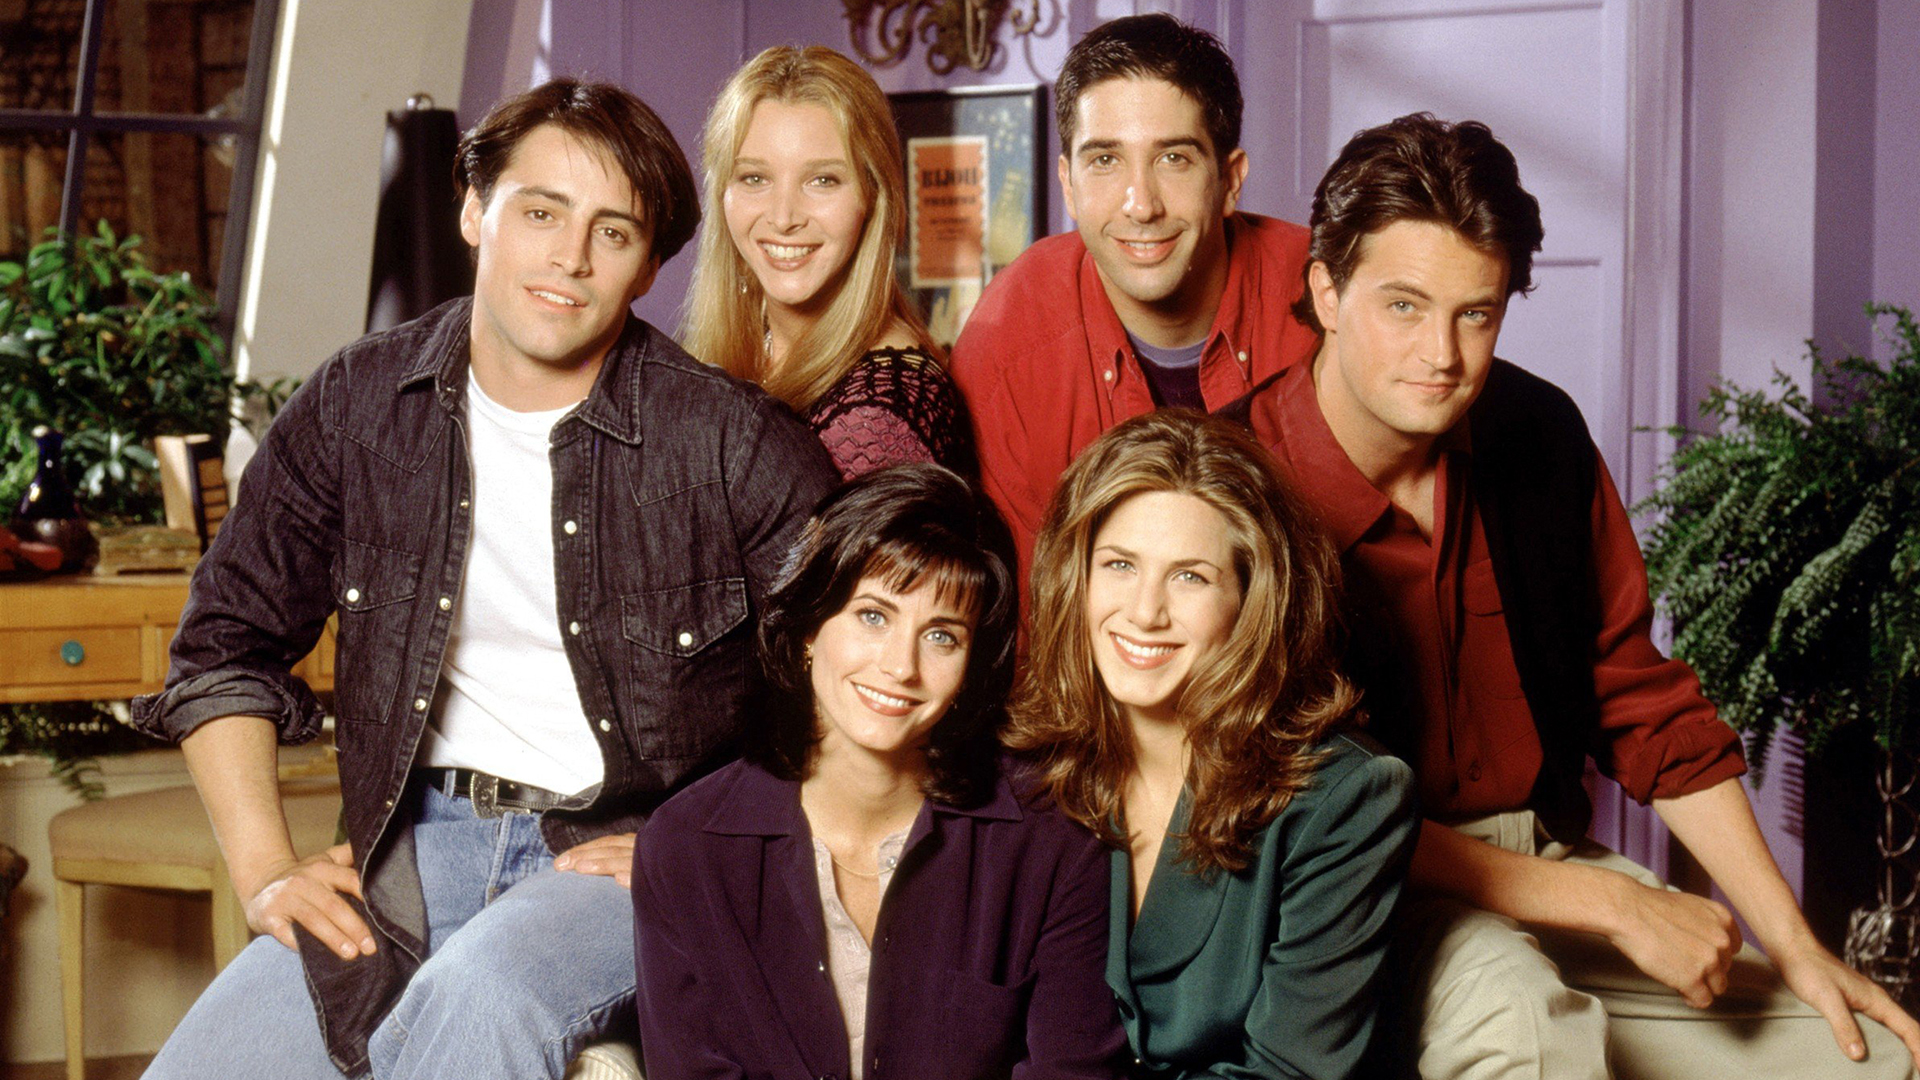 'friends' Flashback! Watch Cast Open Up About Working. Hotels With Jacuzzi In Room Louisville Ky. Room Security Camera. Basketball Decorations For Bedrooms. Rehearsal Dinner Decorating Ideas. Mail Order Catalogs Home Decor. Cheap House Decorating Ideas. Folding Room Partitions. Swimming Pool Decorations